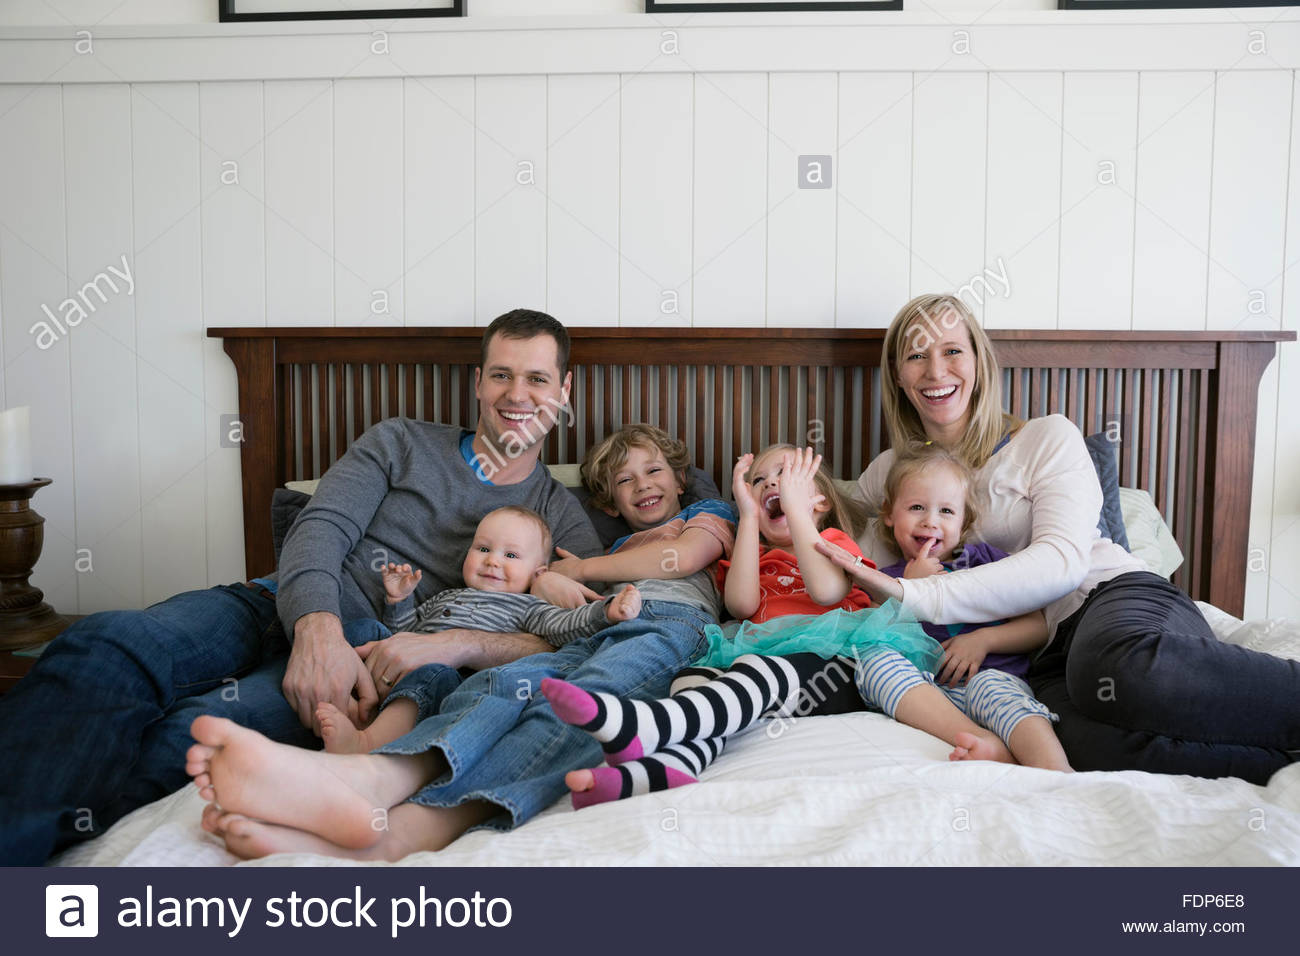 Portrait laughing family relaxing on bed - Stock Image